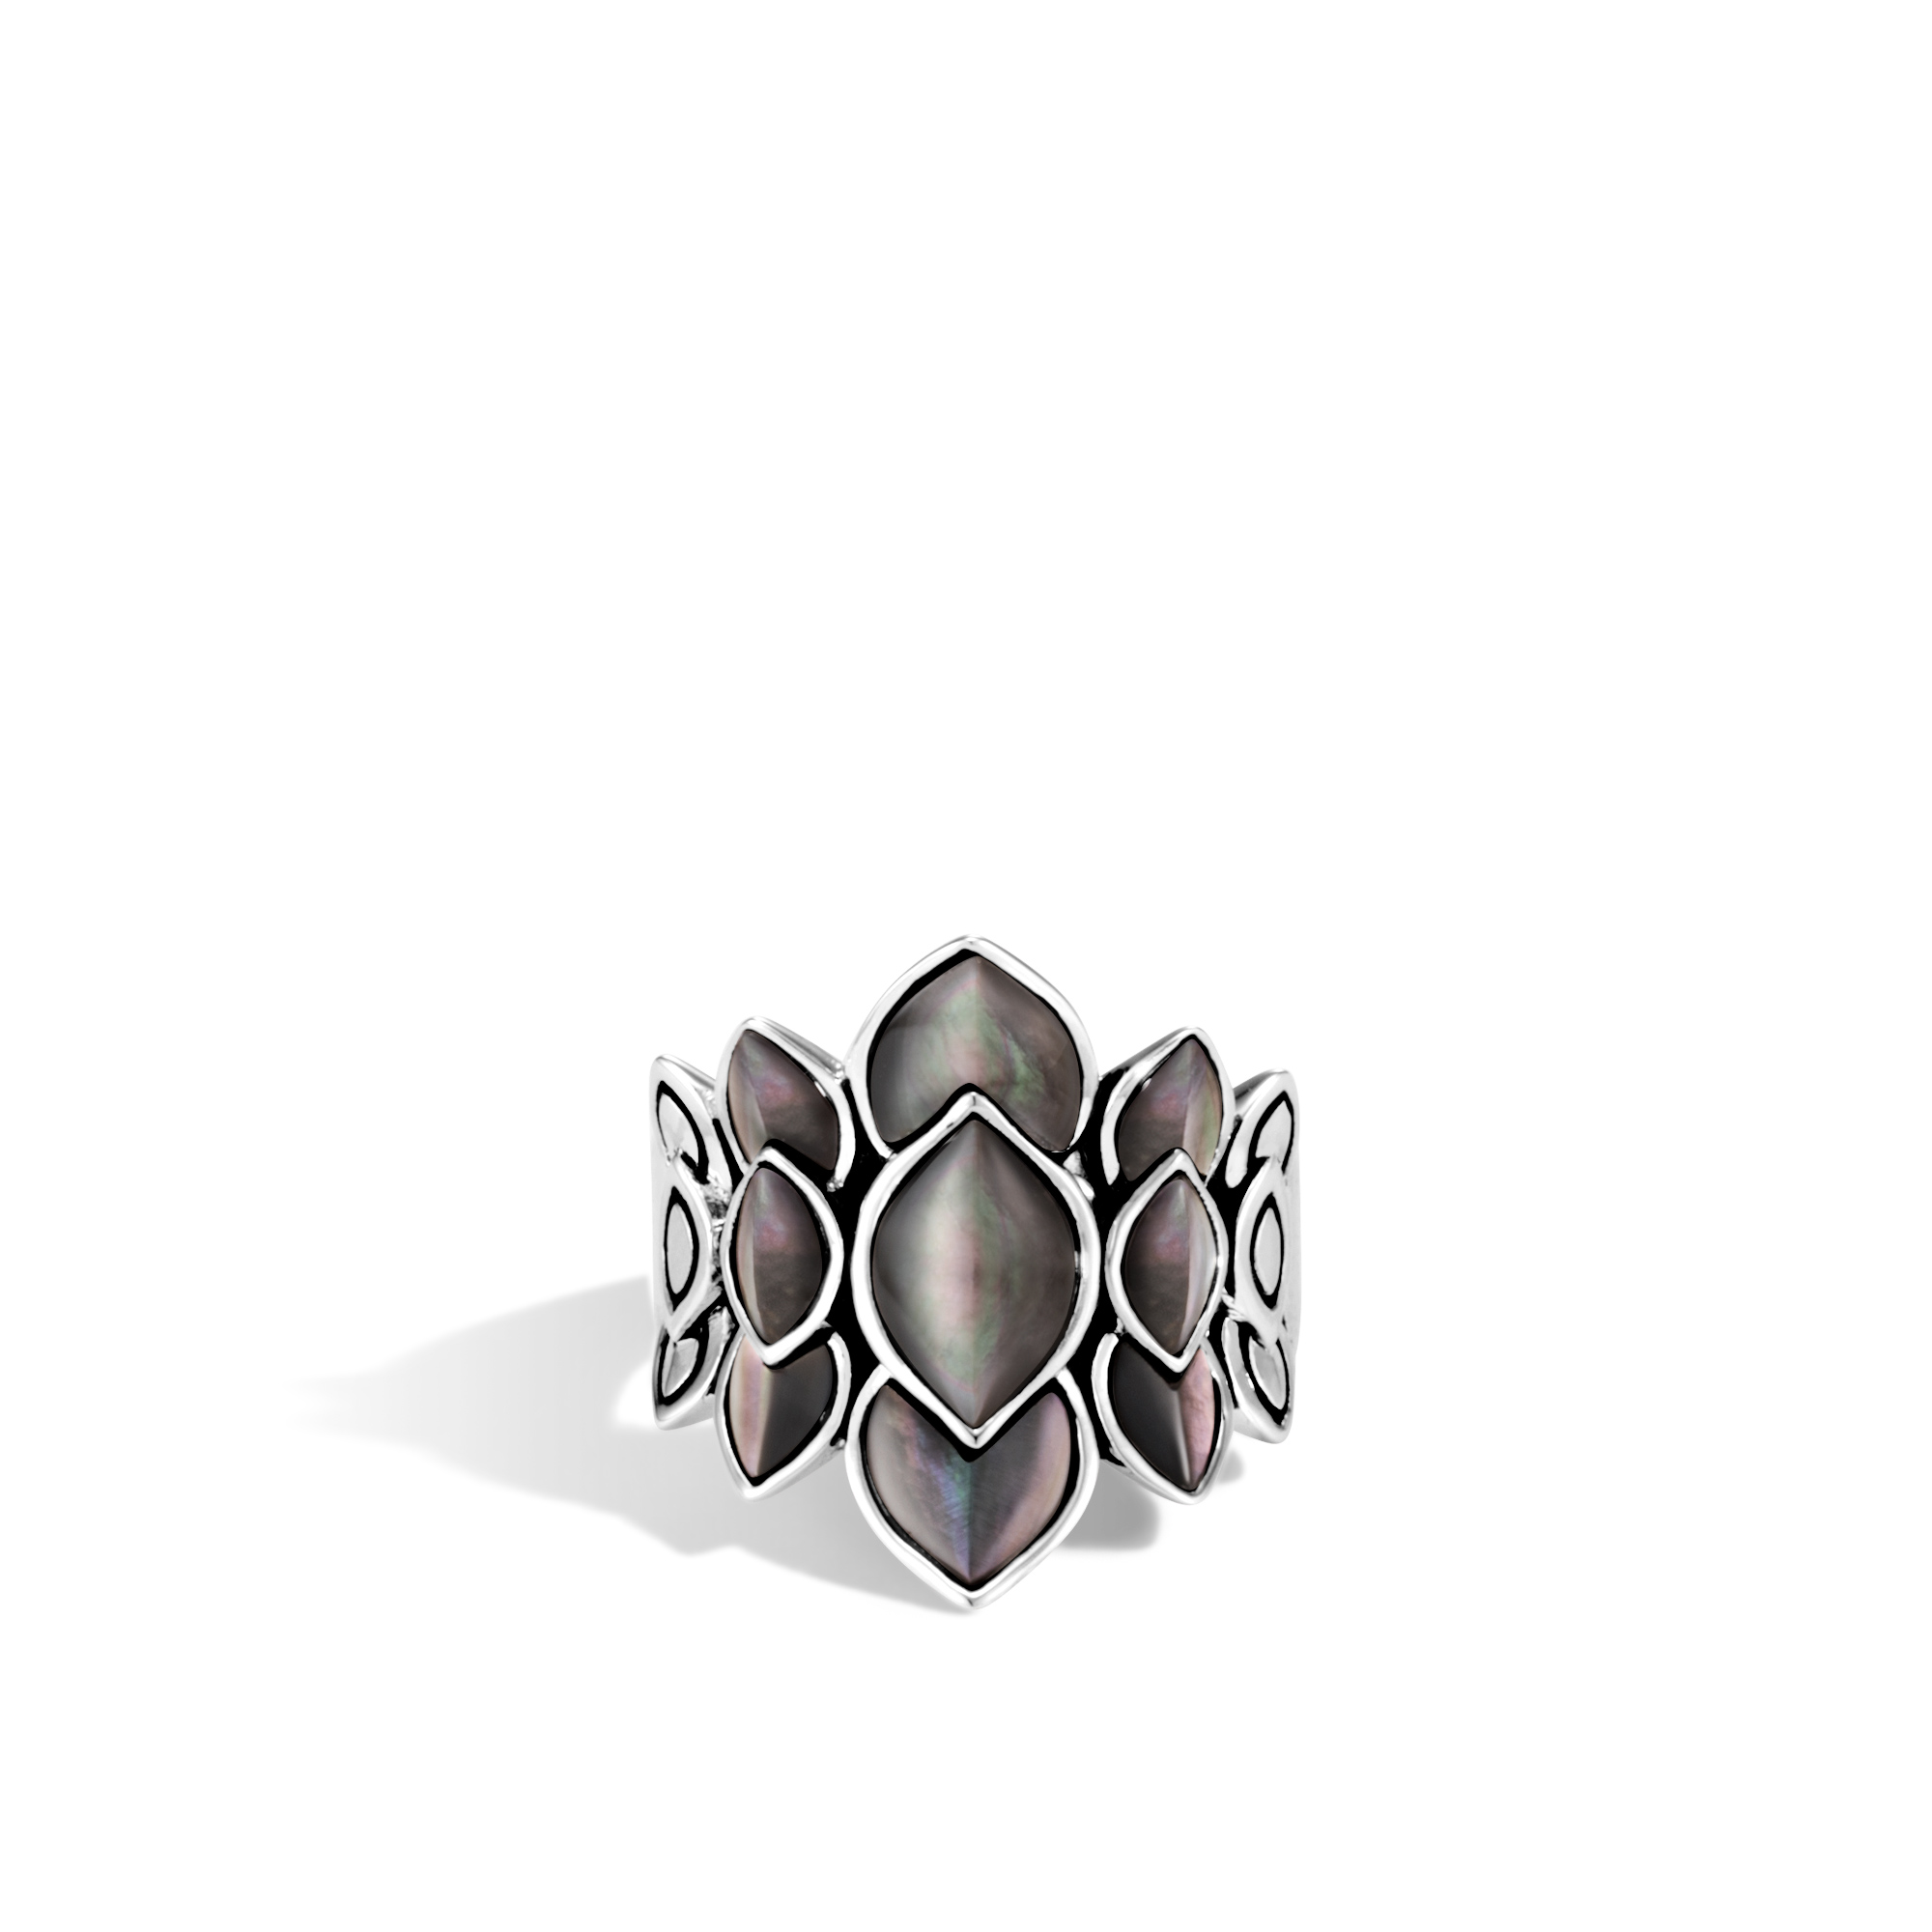 Legends Naga Saddle Ring in Silver with Gemstone, Grey Mother of Pearl, large